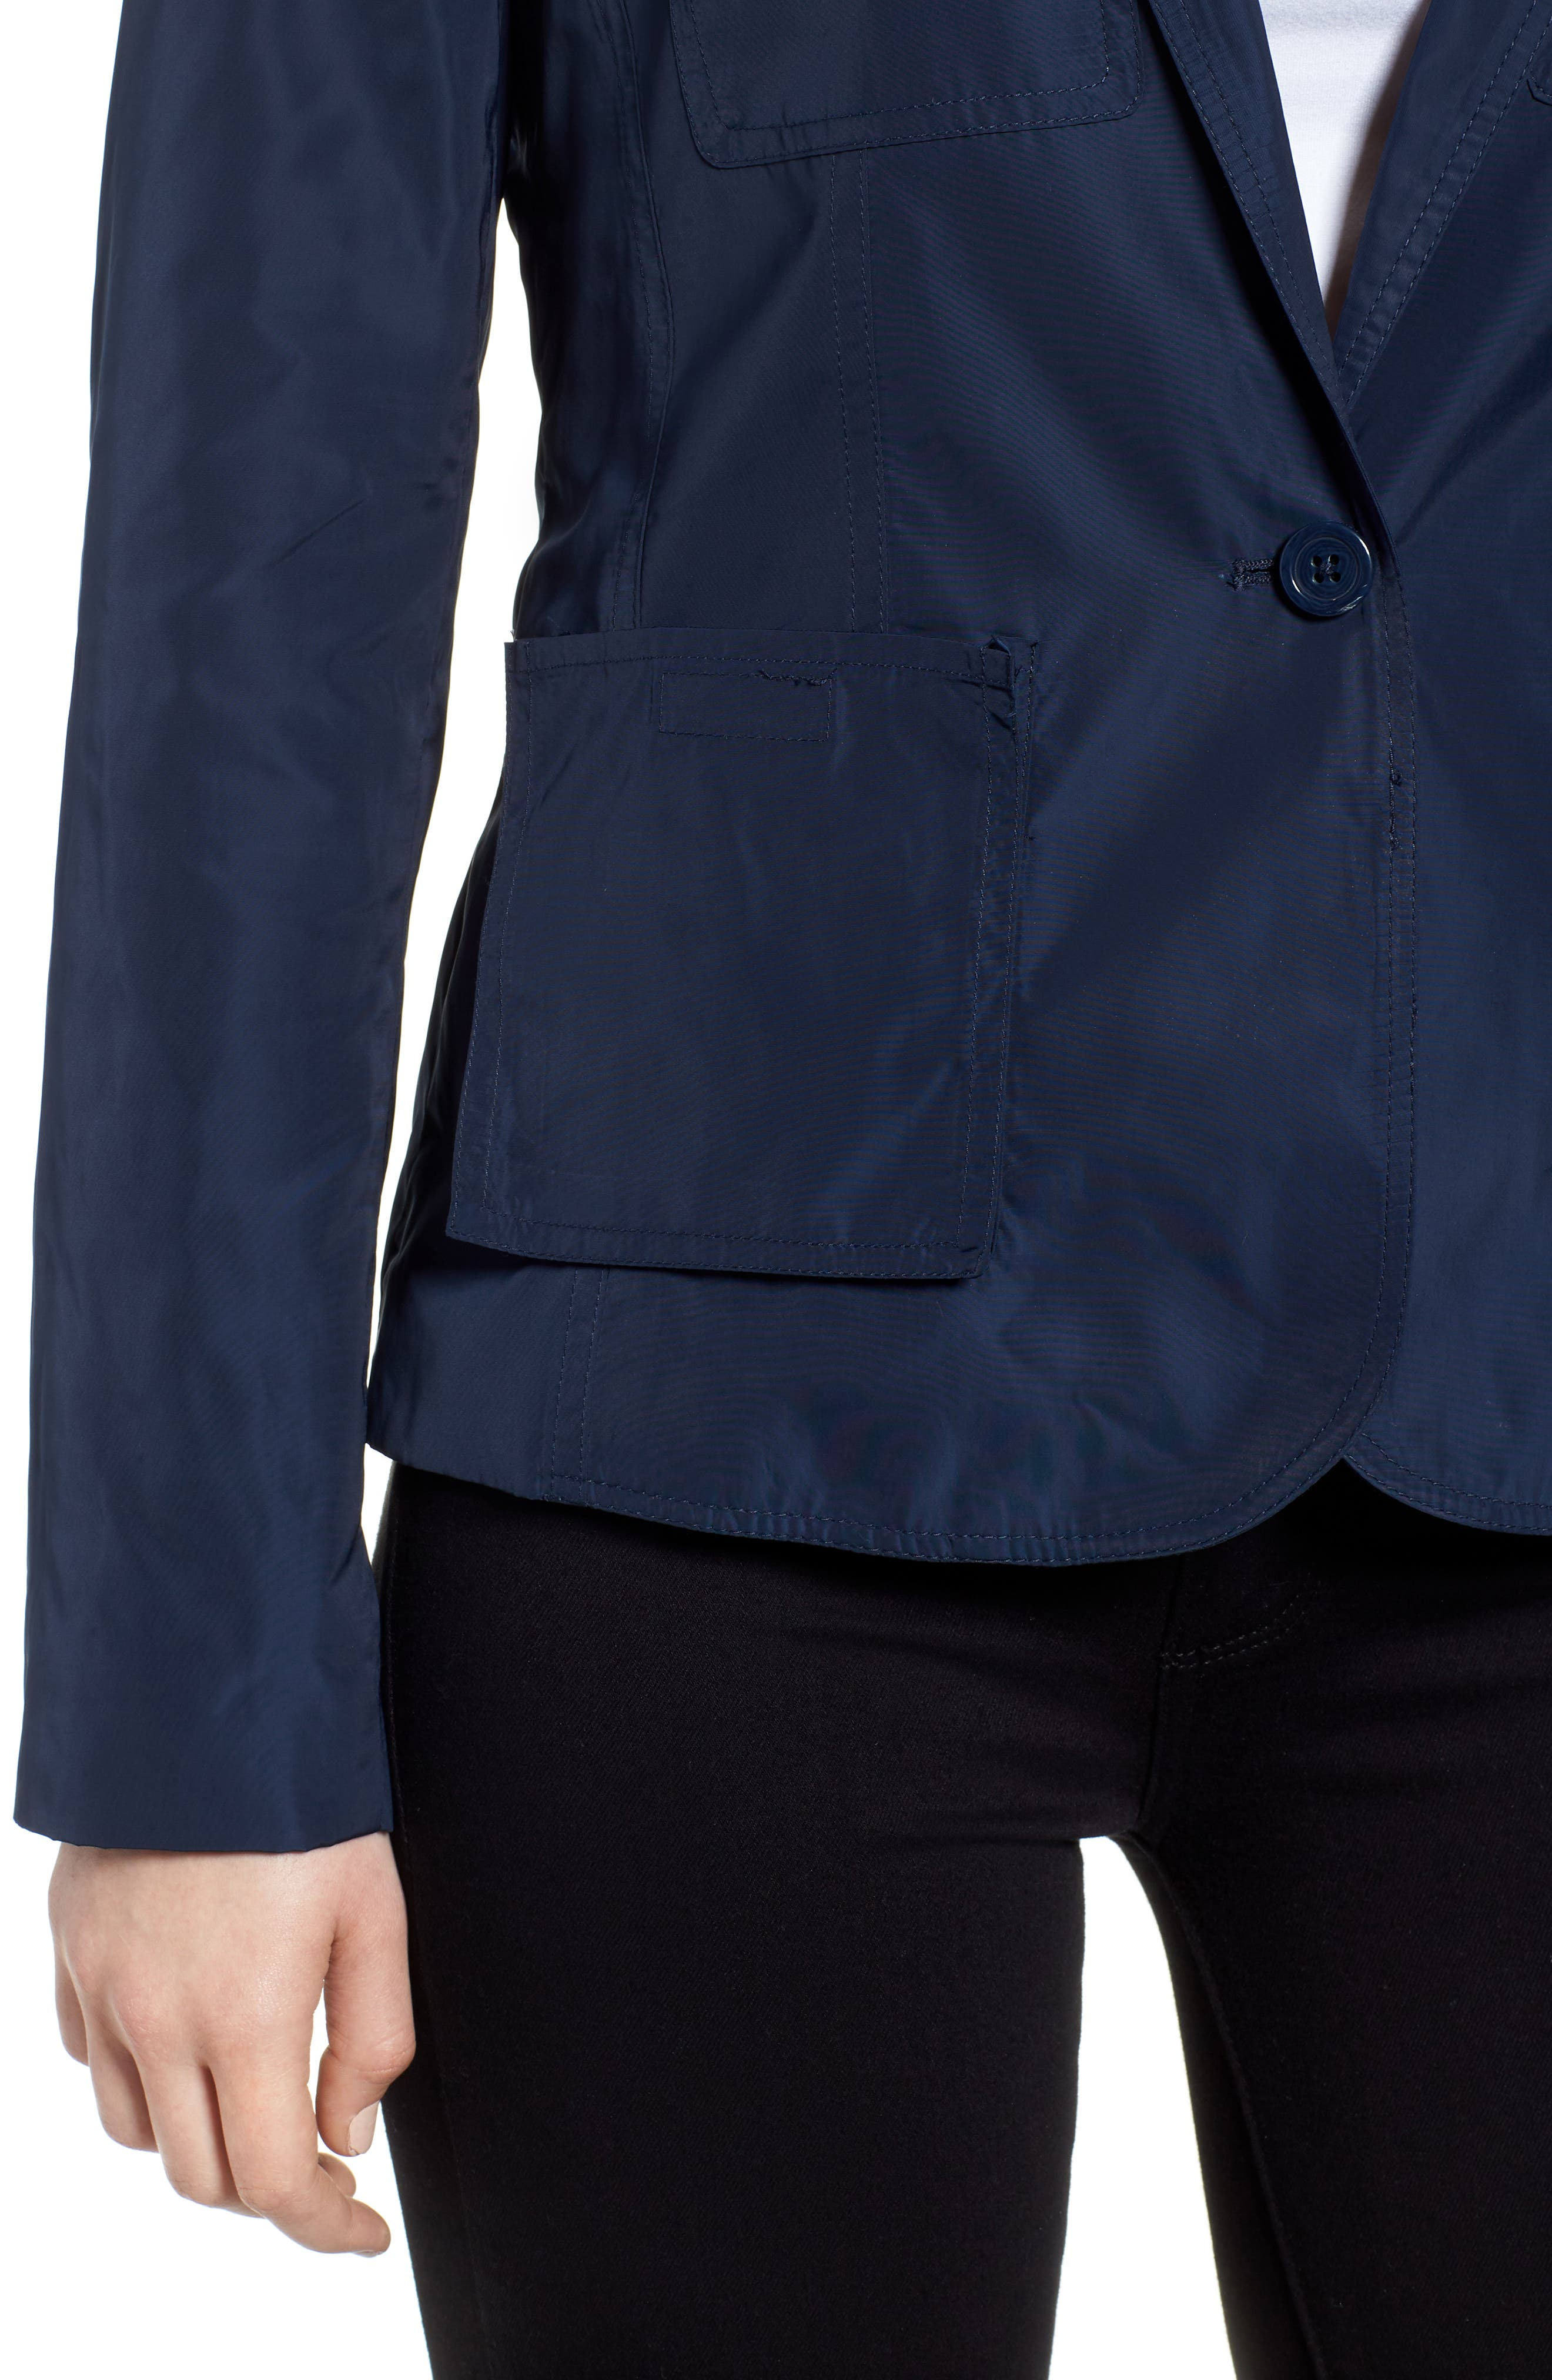 KENNETH COLE NEW YORK,                             Two-Button Blazer,                             Alternate thumbnail 4, color,                             404